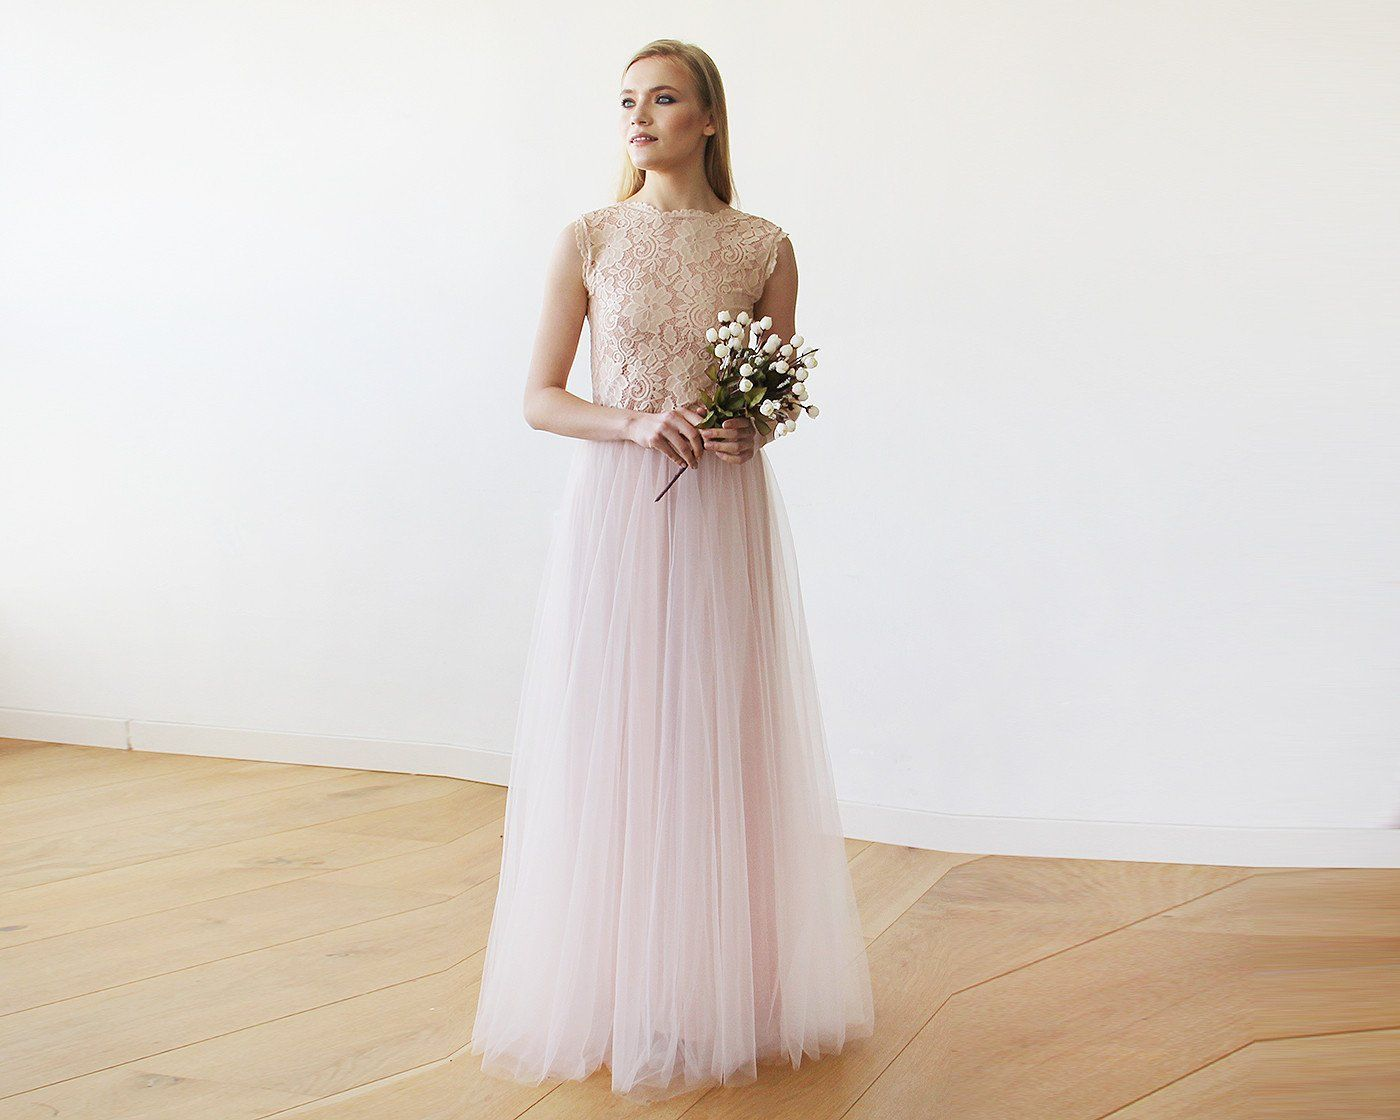 Pink Blush Tulle and Lace Sleeveless Maxi Gown 1145 - Blushfashion